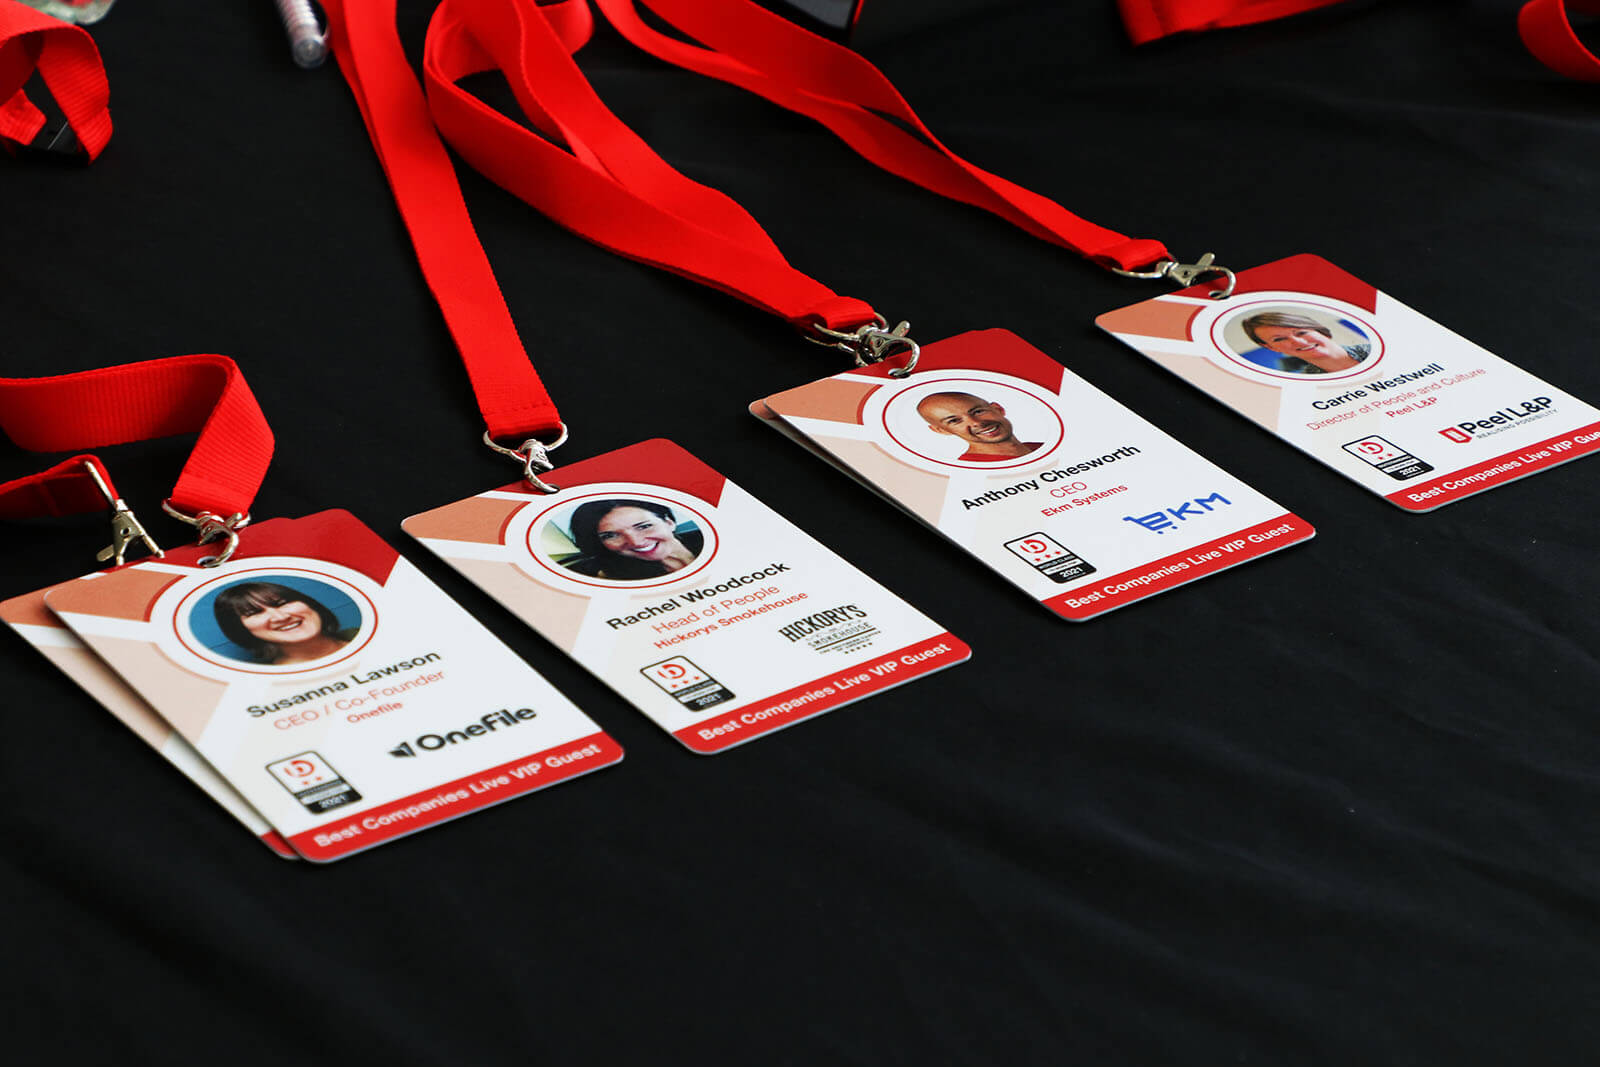 Four Special Guests VIP badges for Best Companies Live